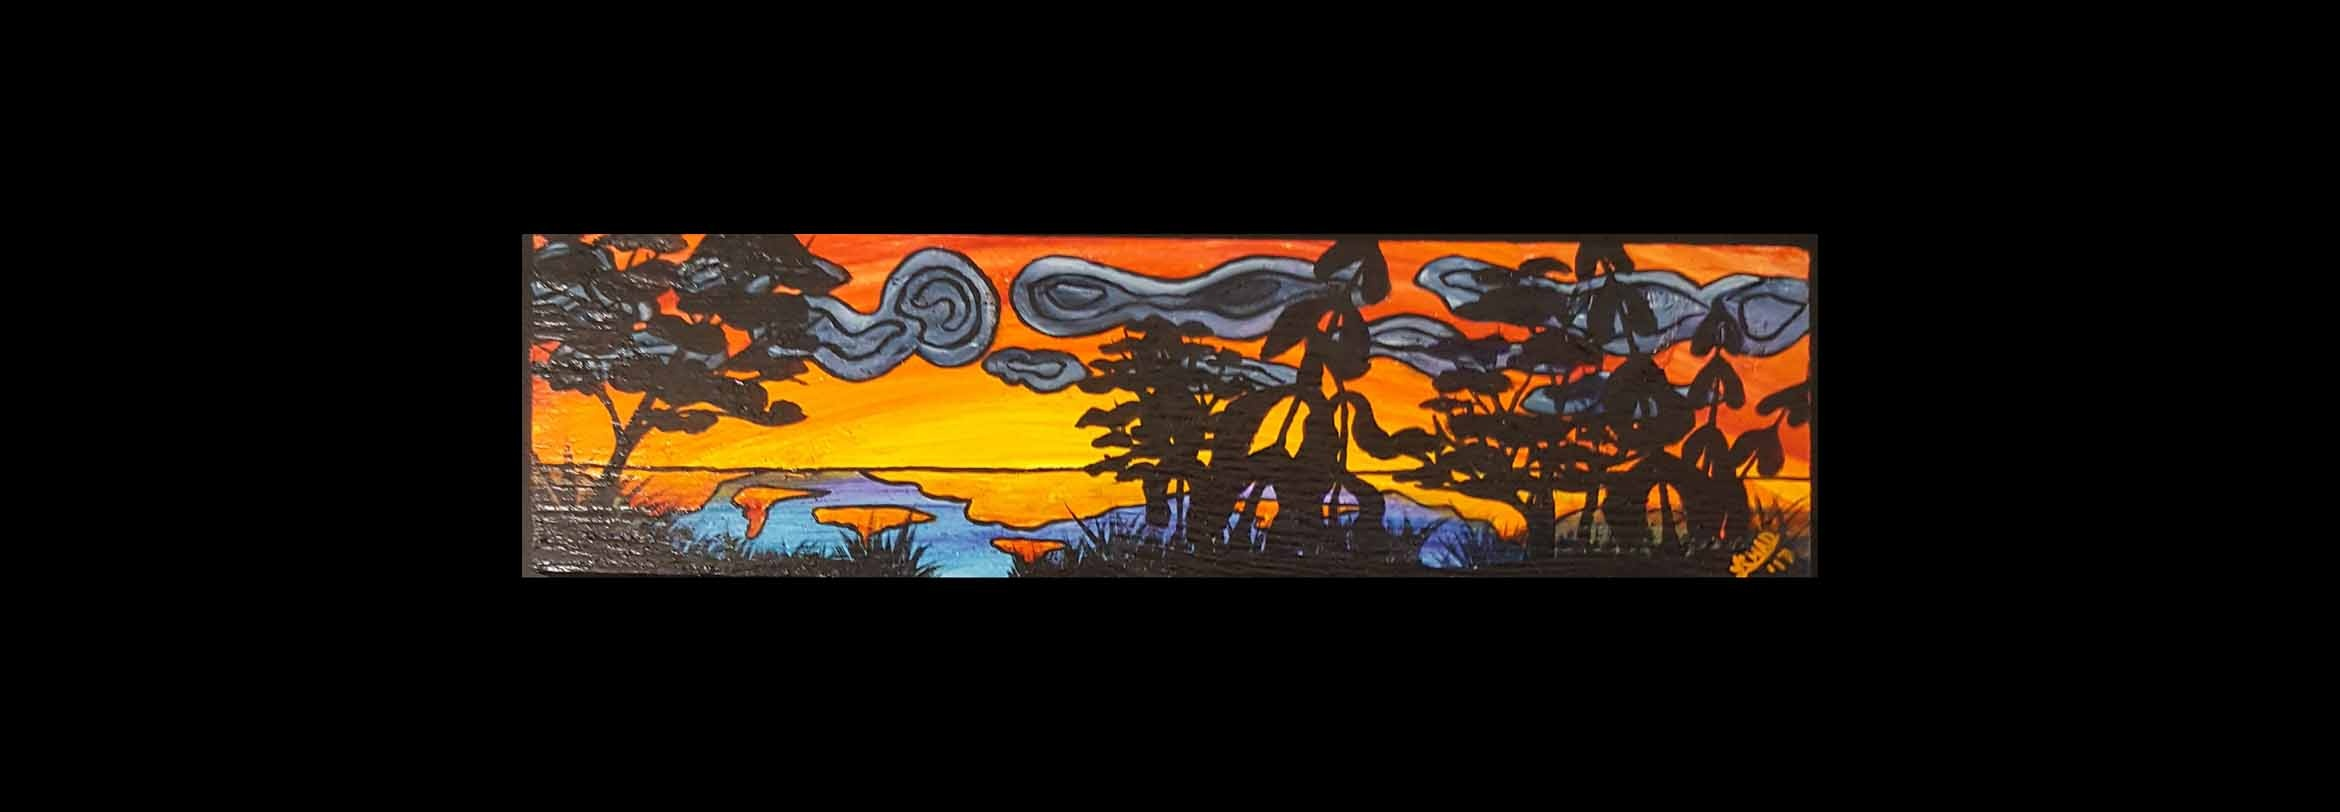 "2017-12 ""Sunset at the Lake"" Framed 26"" x 13.25"" Mixed media on board $250.00"